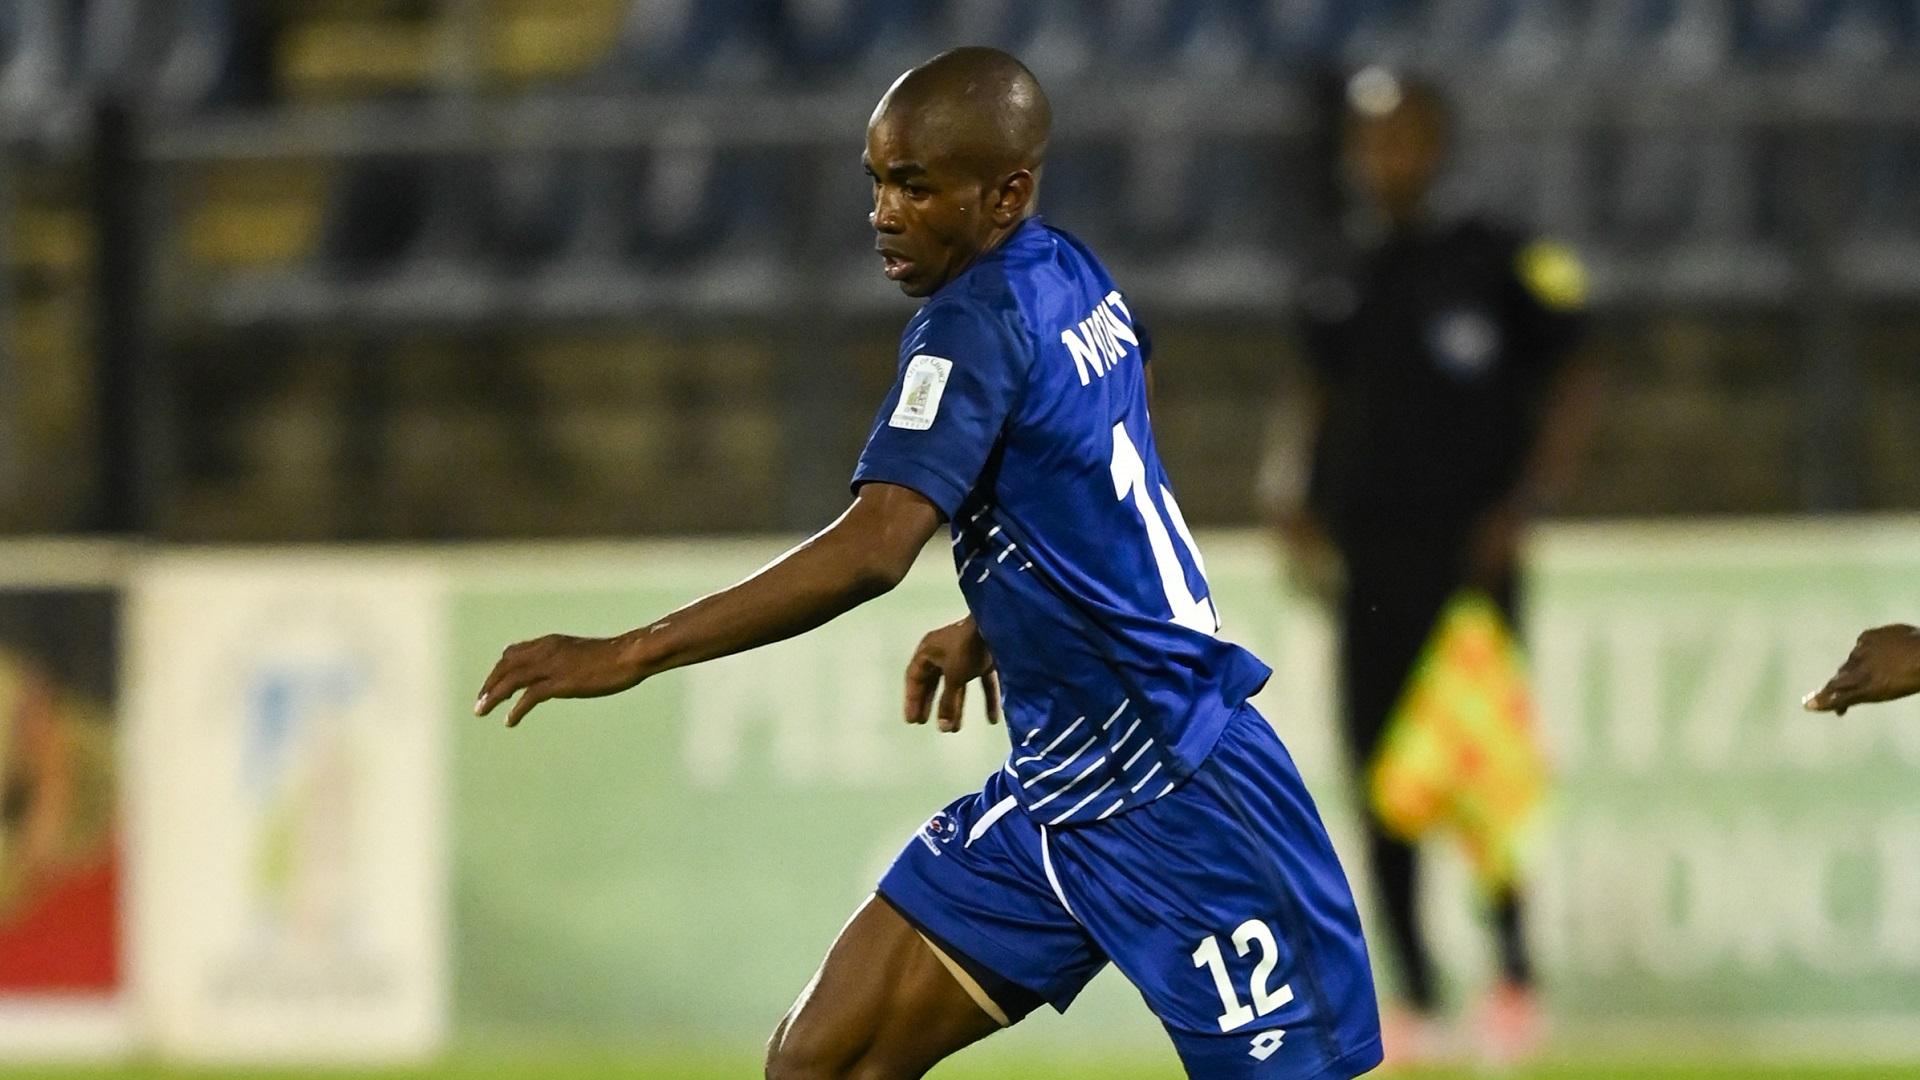 Ex-Maritzburg winger Nyoni reveals interest from Europe and Egypt after social media drive